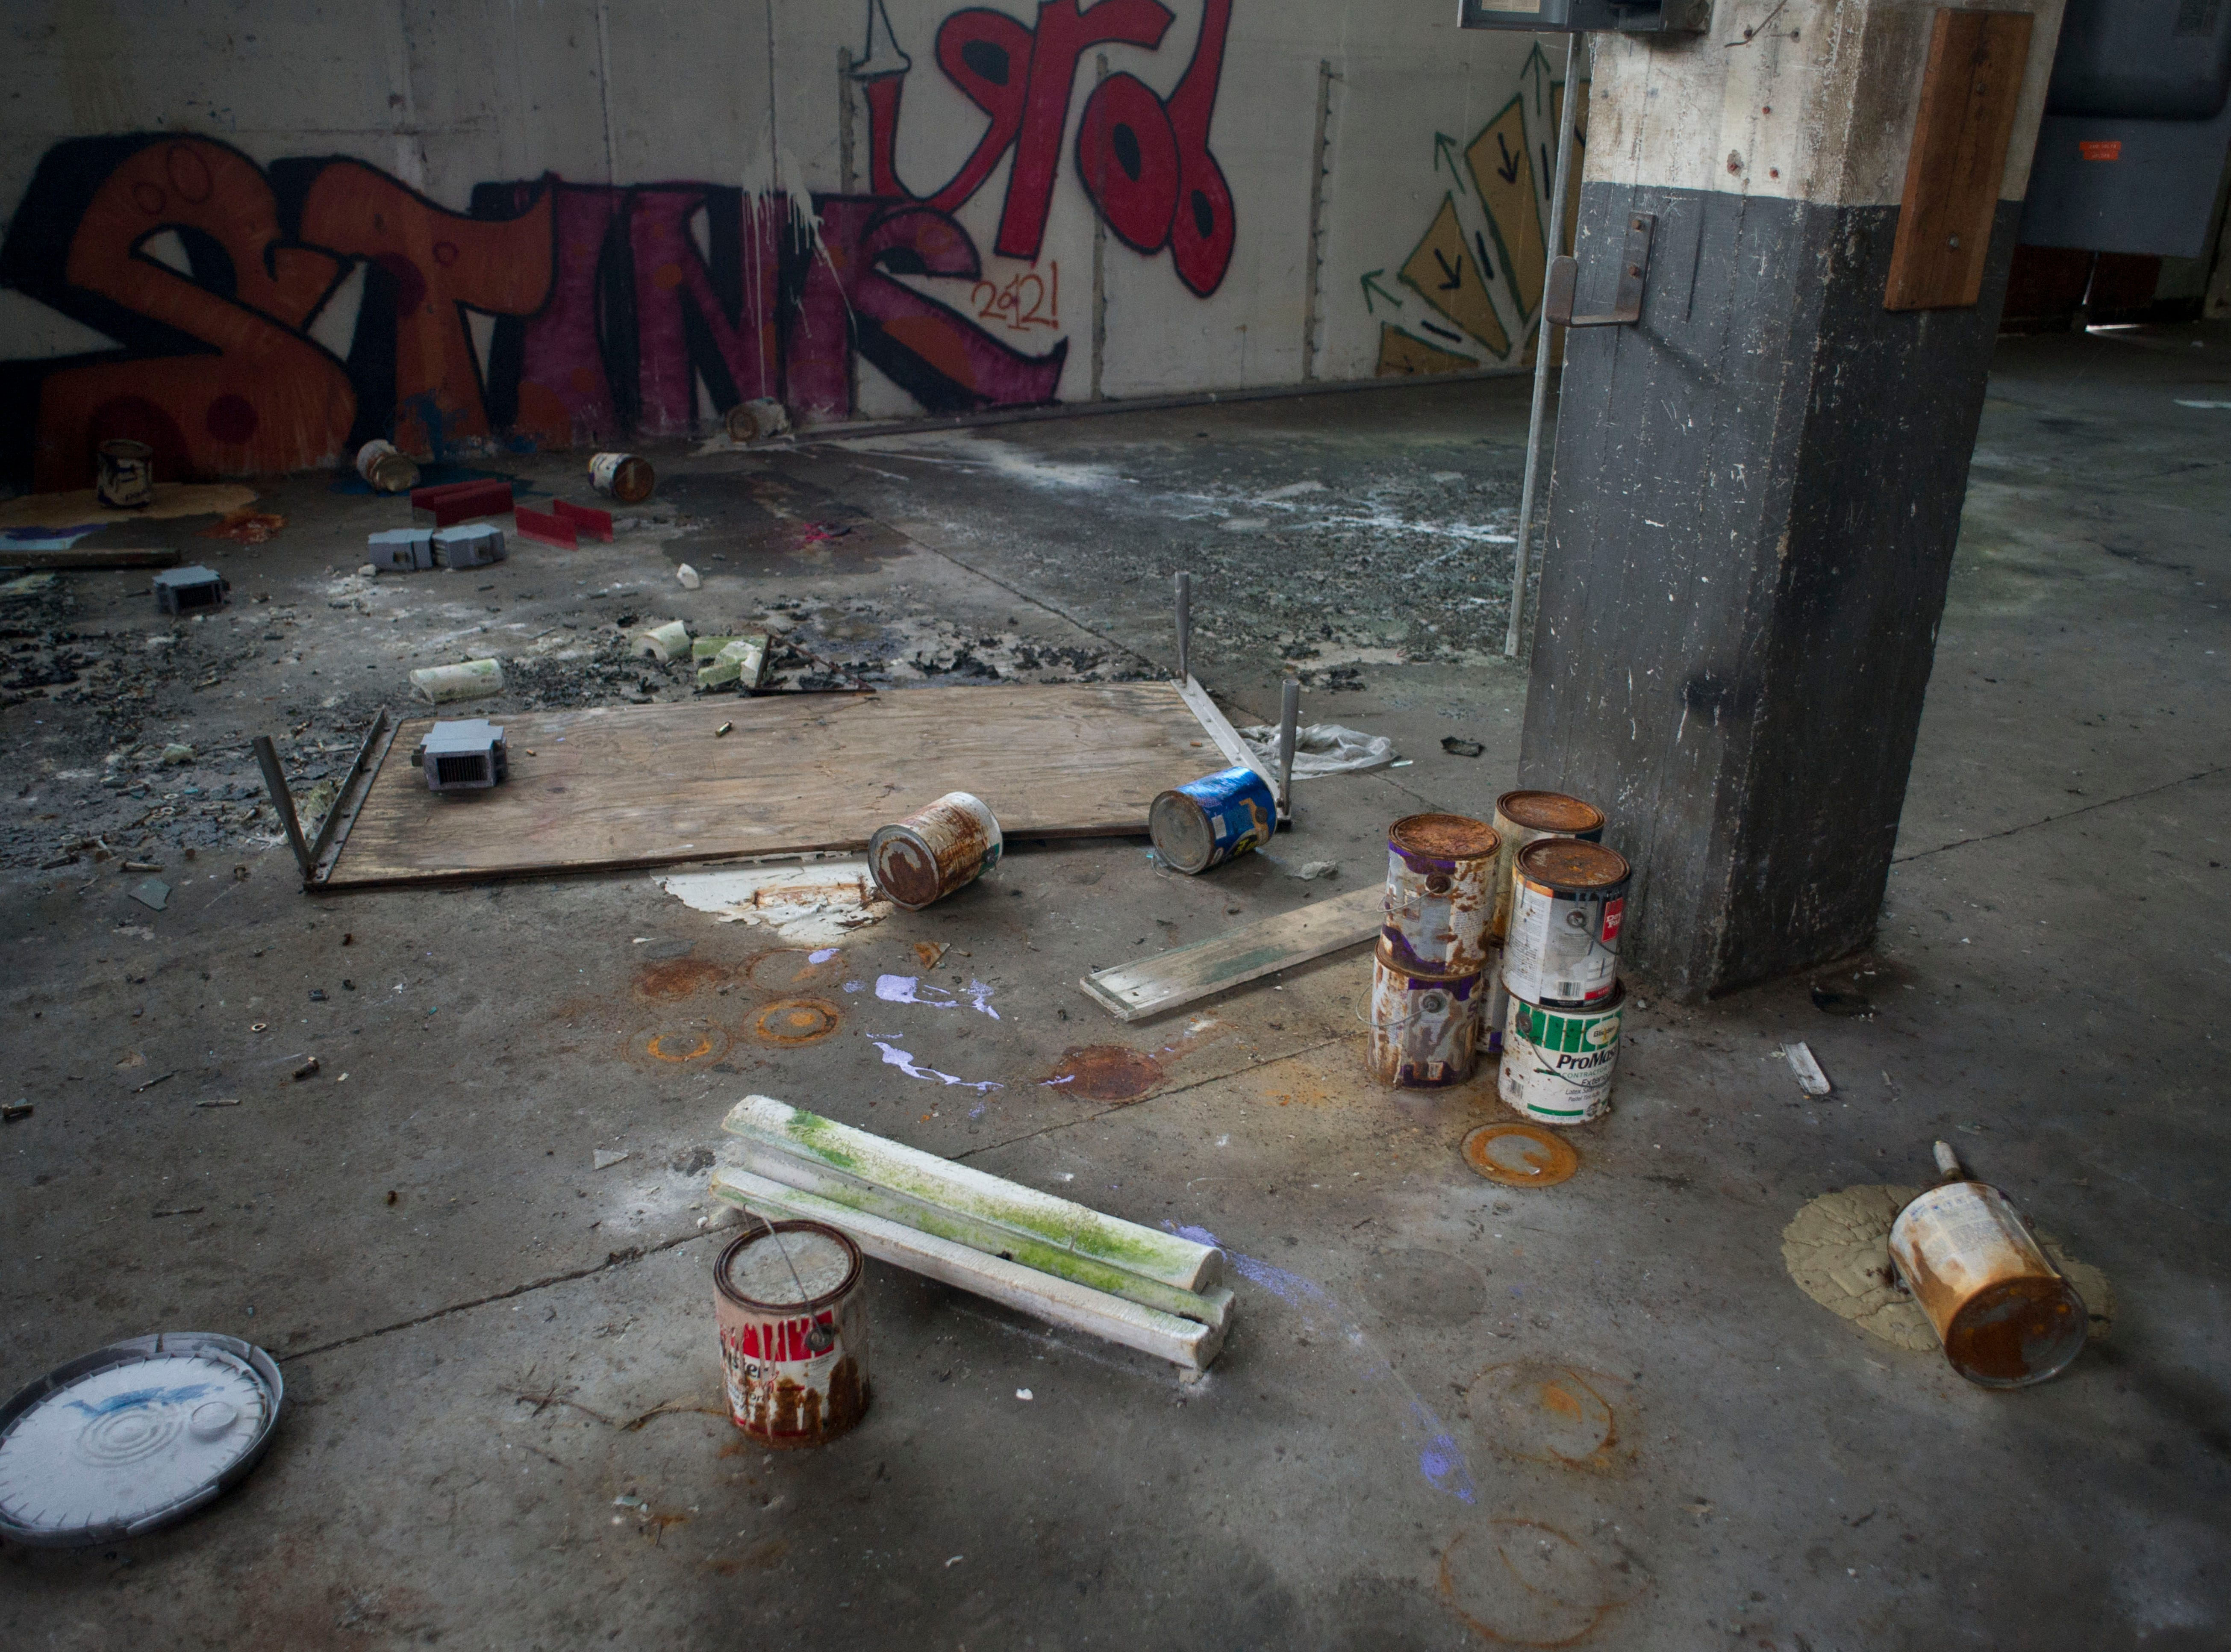 Old paint cans and graffiti in the Standard Knitting Mill building on Thursday, November 15, 2012.